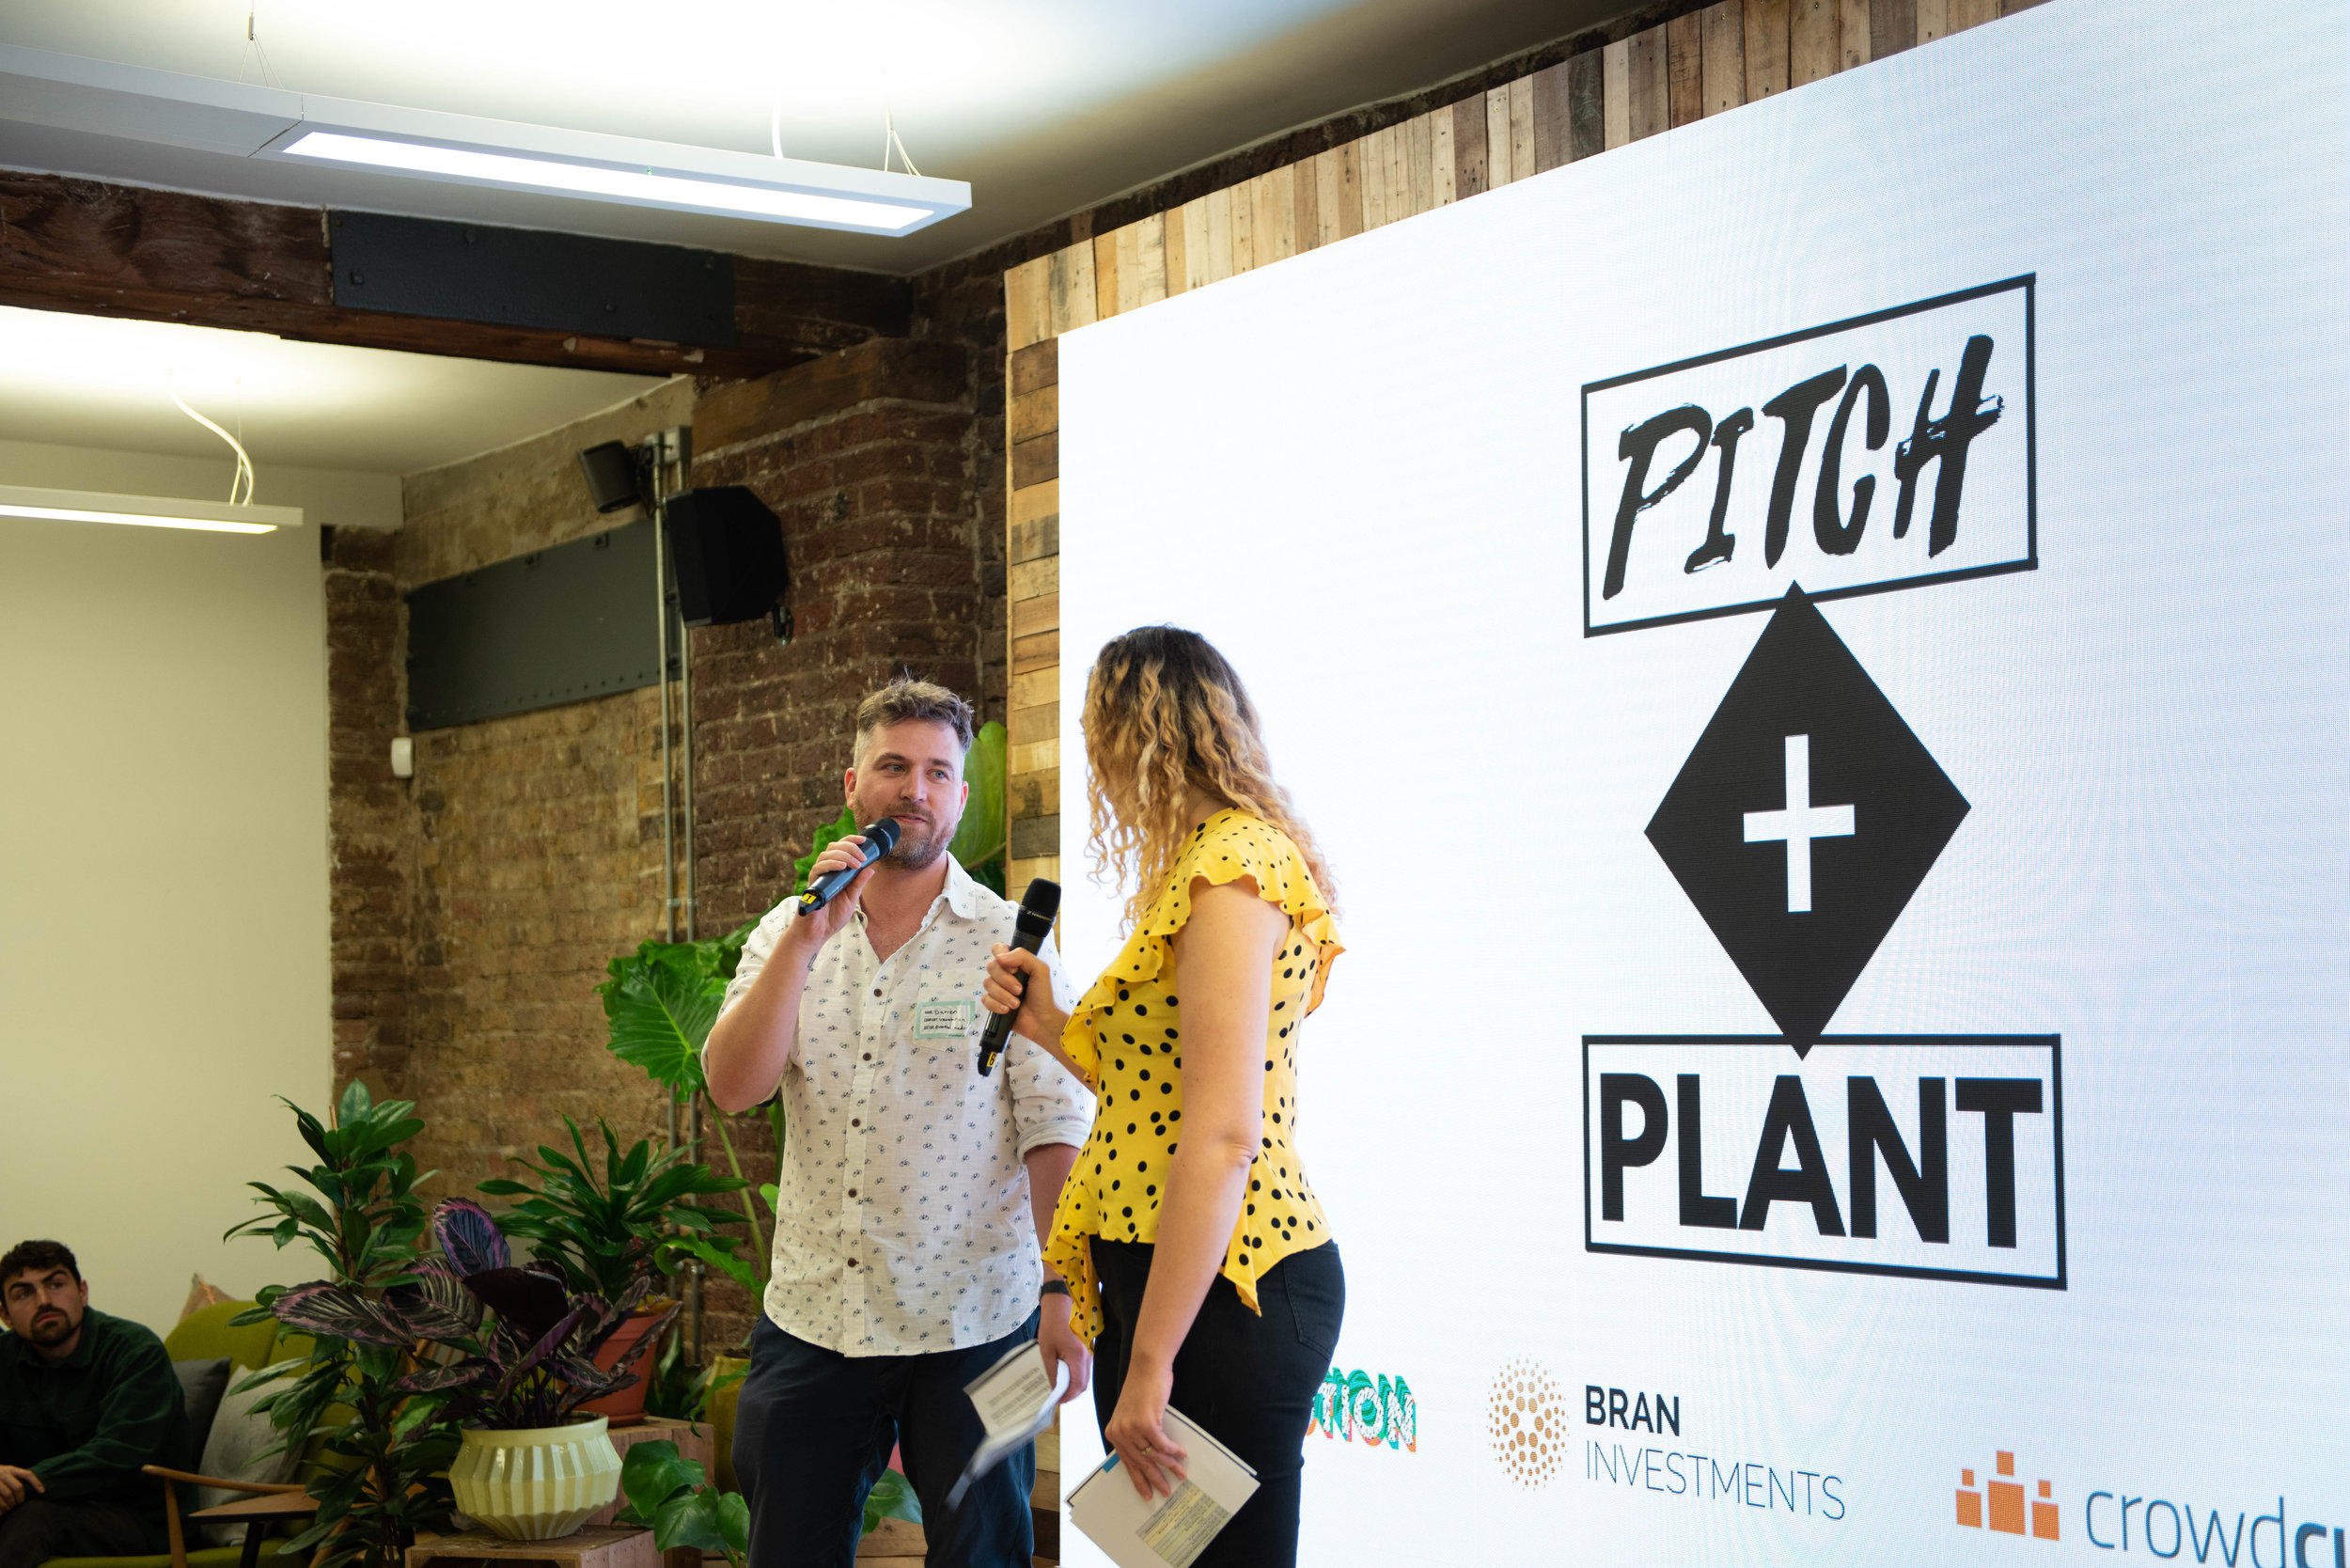 Vevolution co-founders, Damien + Judy, at Pitch + Plant 2018